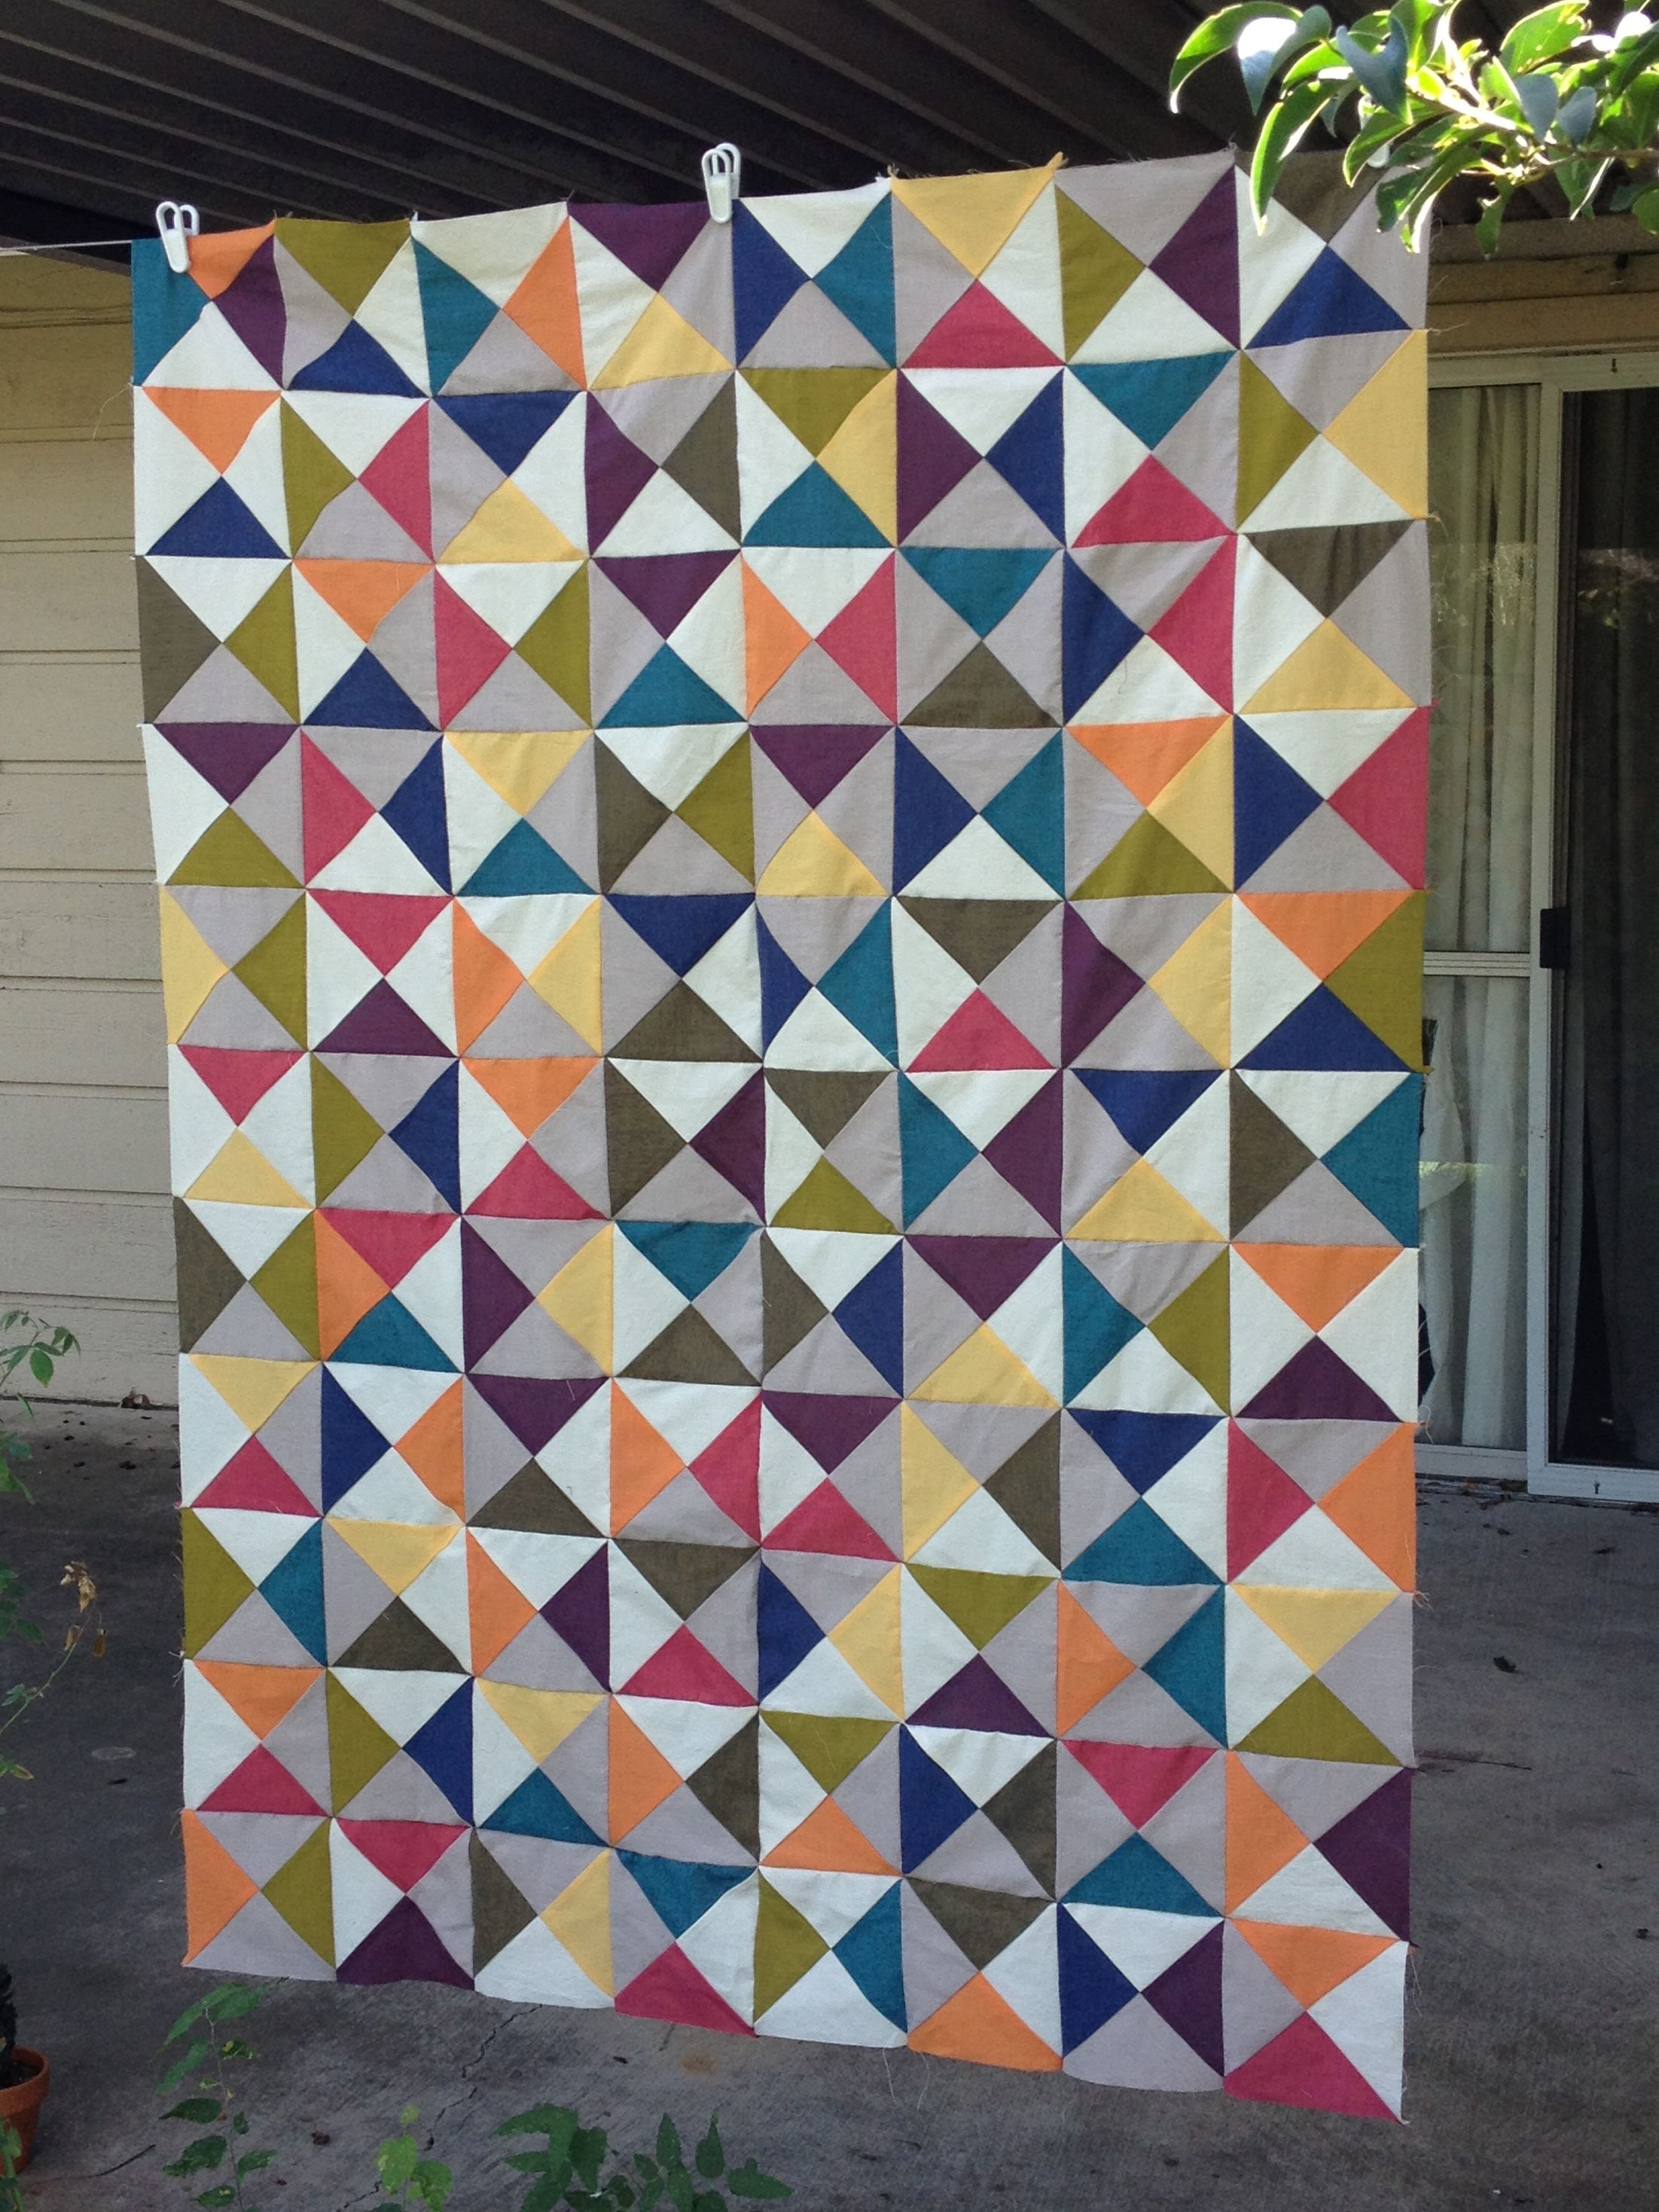 broken dishes quilt pattern - Google Search | Scrap Quilts ... : broken dishes quilt - Adamdwight.com